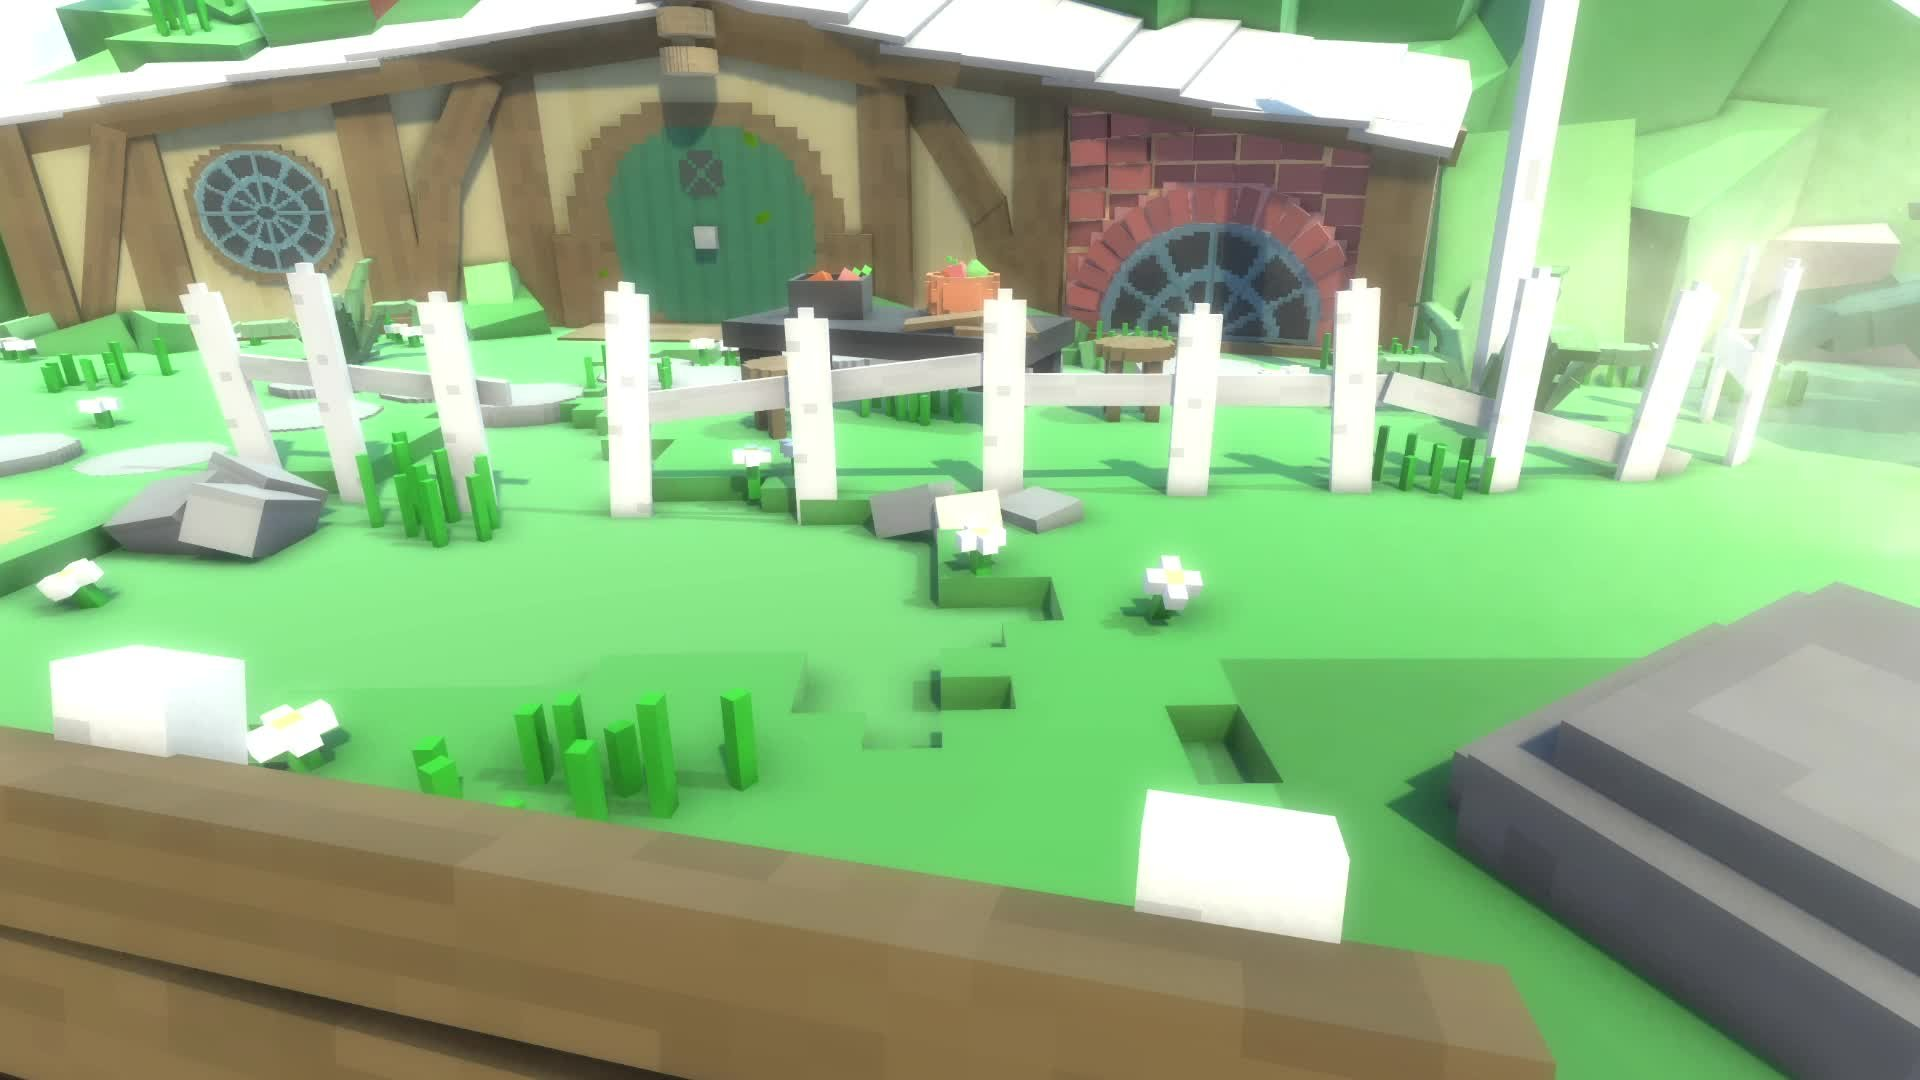 Unity 5 Environment Design using Voxel Art - for everyone